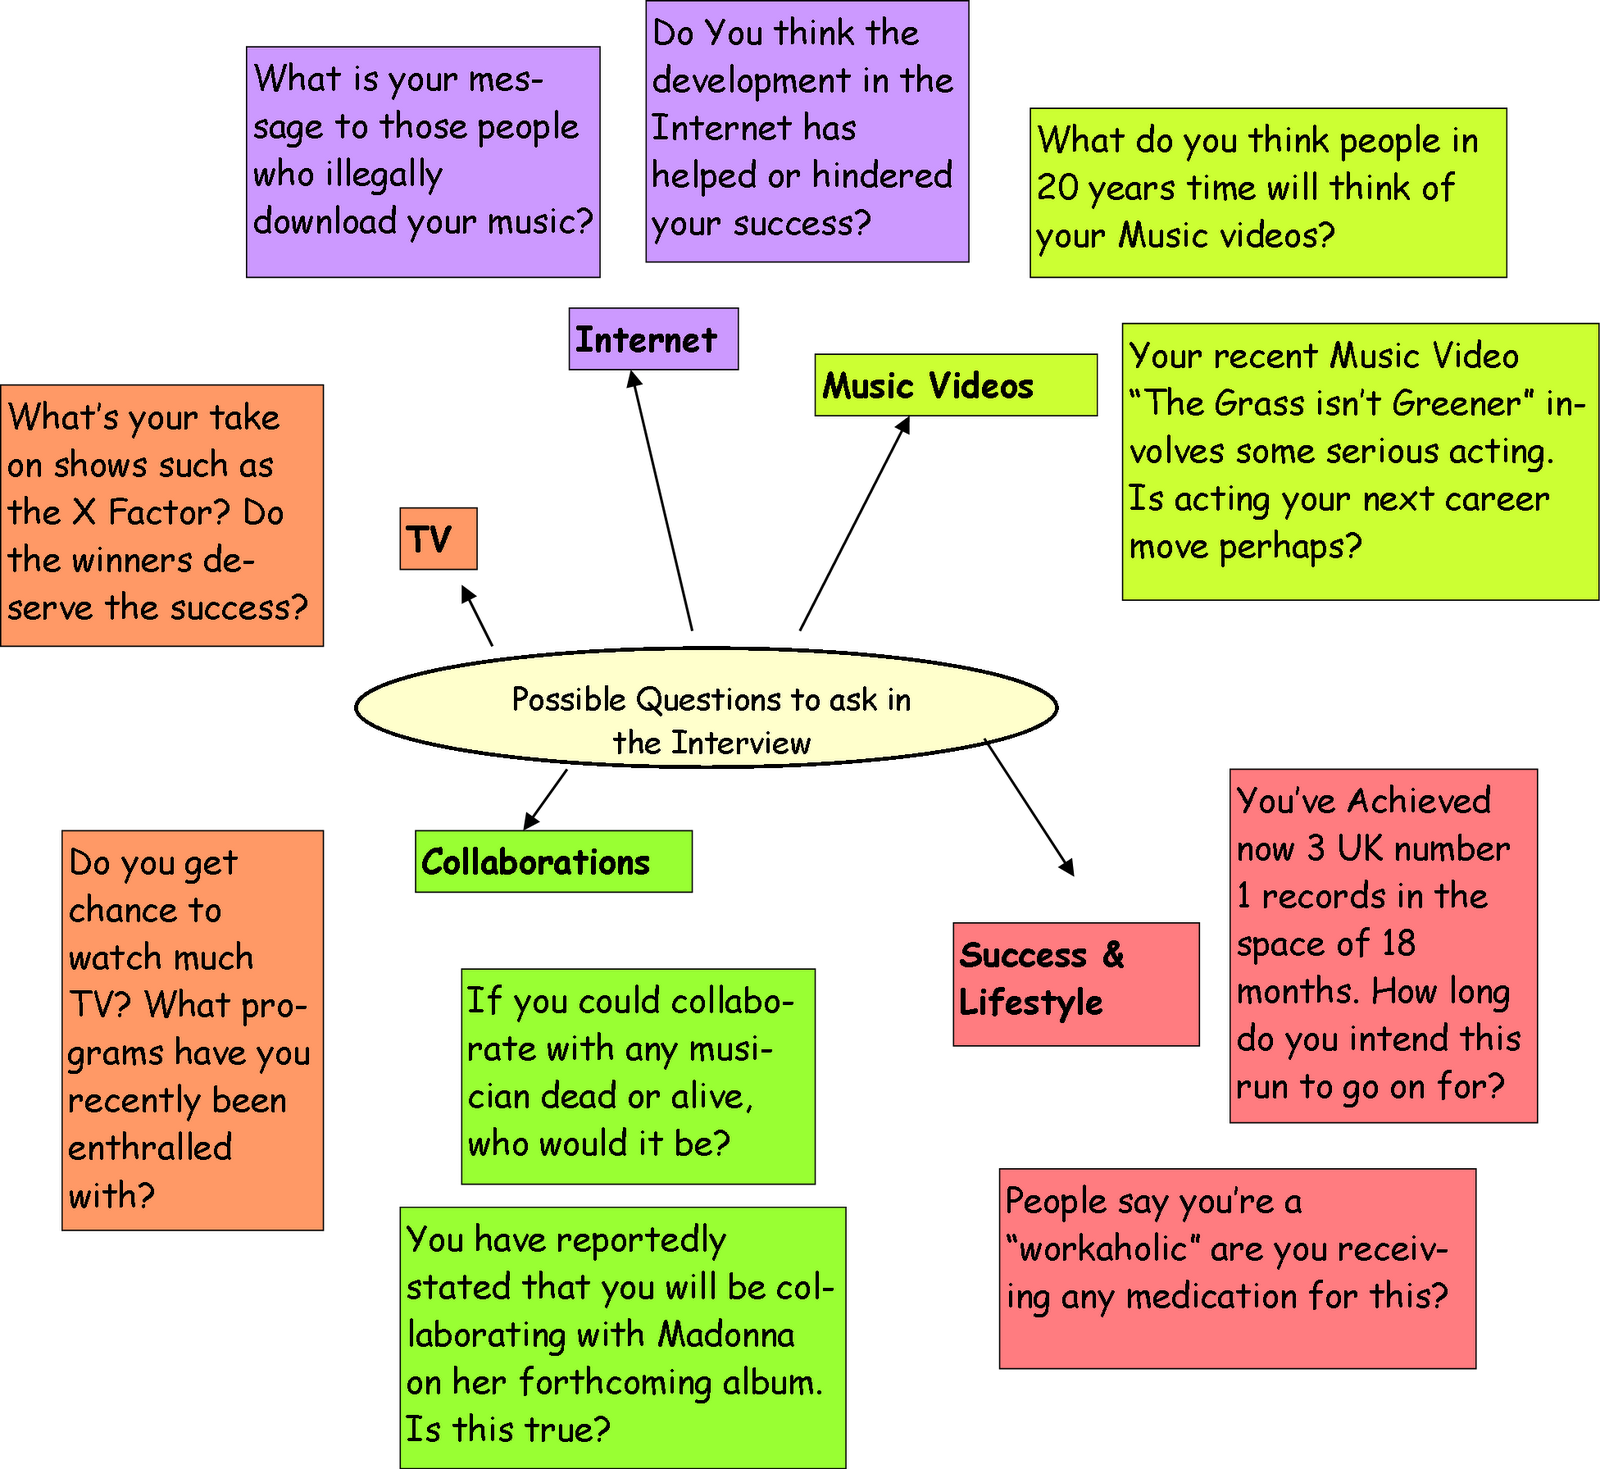 fred s media as coursework what questions to ask in interview